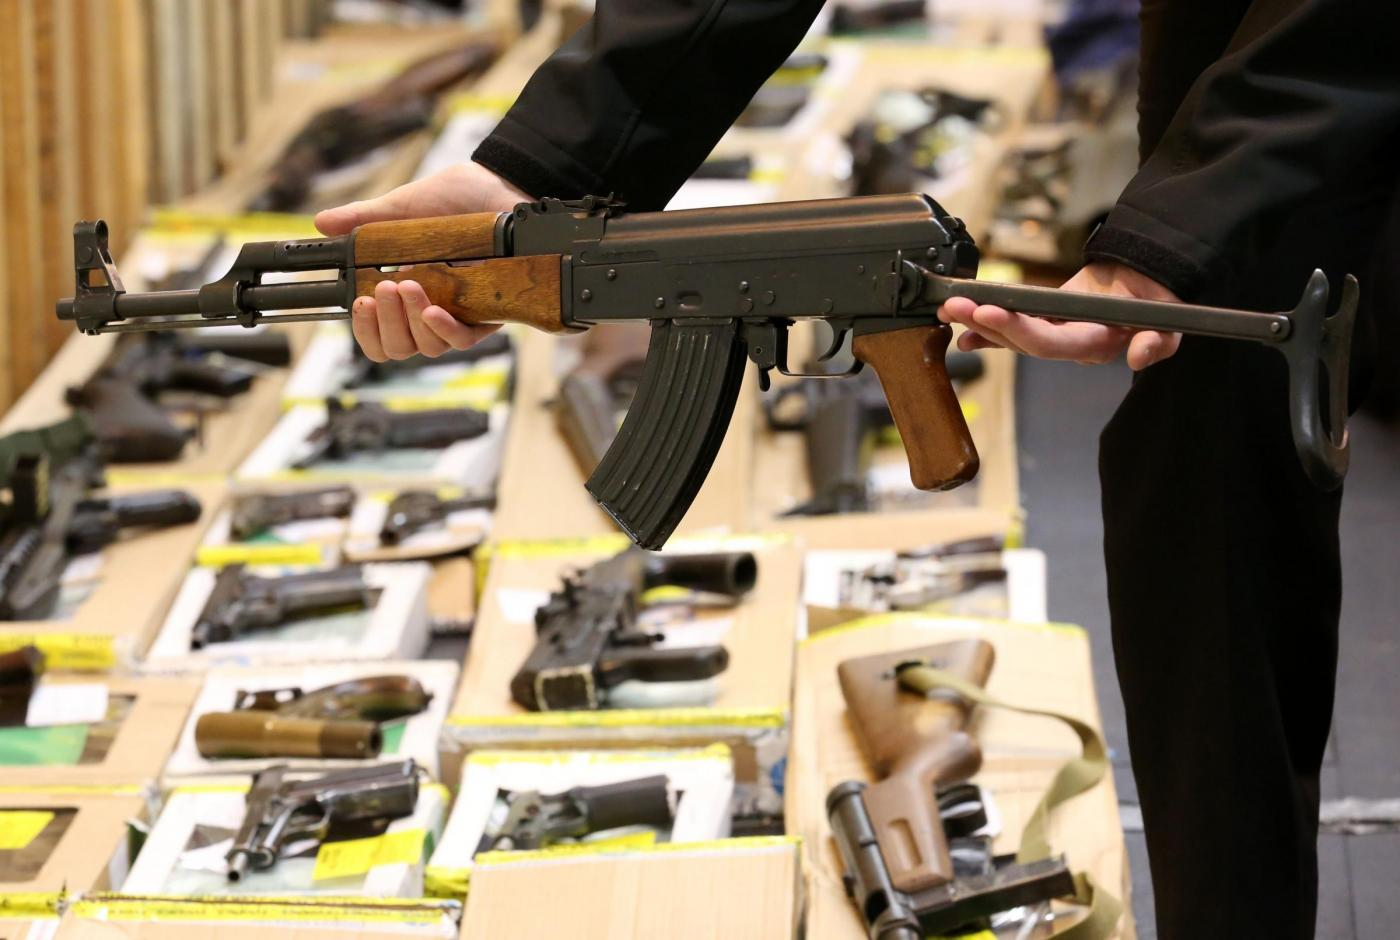 An AK47 on display at Suffolk Police Headquarters at Martlesham in Suffolk which was found at the house of James Arnold, part of the the biggest hoard of illegal weapons ever uncovered in the UK. PRESS ASSOCIATION Photo. Issue date: Friday February 19, 2016. Police found 463 illegal firearms, including rifles, machine guns and an anti-tank missile, along with 200,000 rounds of ammunition in a secret room at the home of crane operator and parish council chairman James Arnold, 49, in the village of Wyverstone, Suffolk as Anthony Buckland. a firearms dealer, has been jailed for six years for suppling a small number of the weapons. See PA story COURTS Firearms. Photo credit should read: Chris Radburn/PA Wire